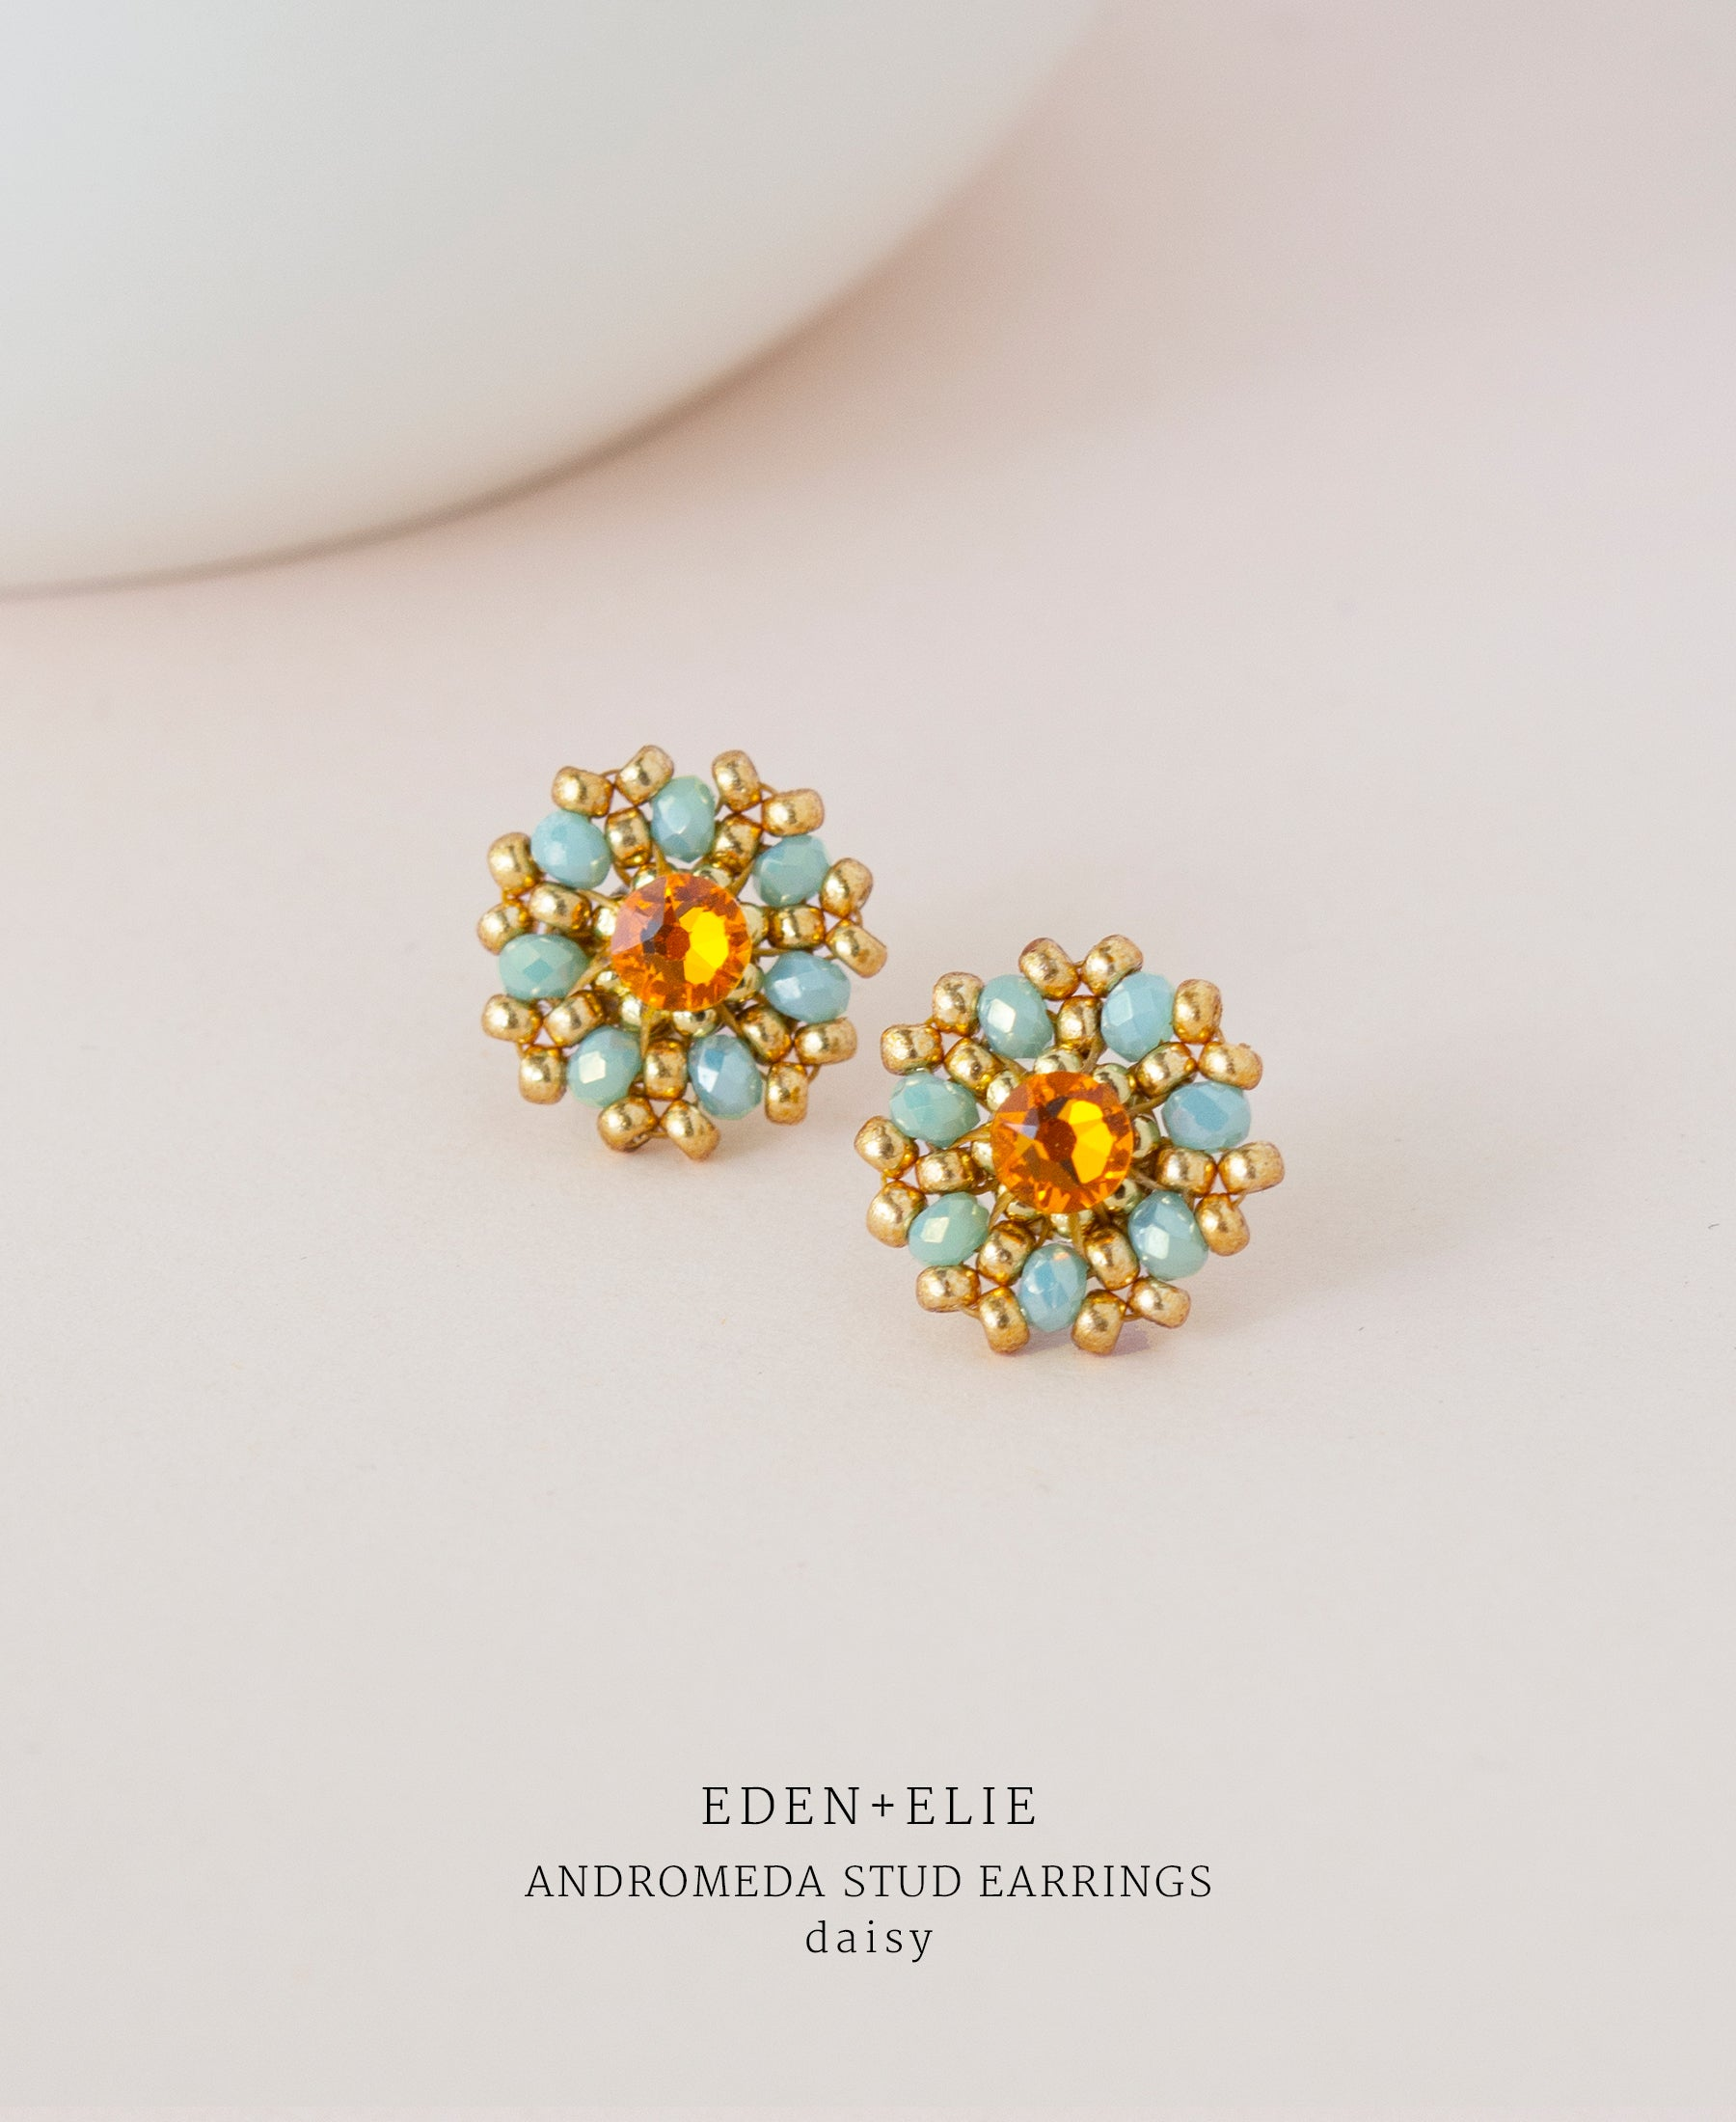 EDEN + ELIE Andromeda stud earrings - daisy